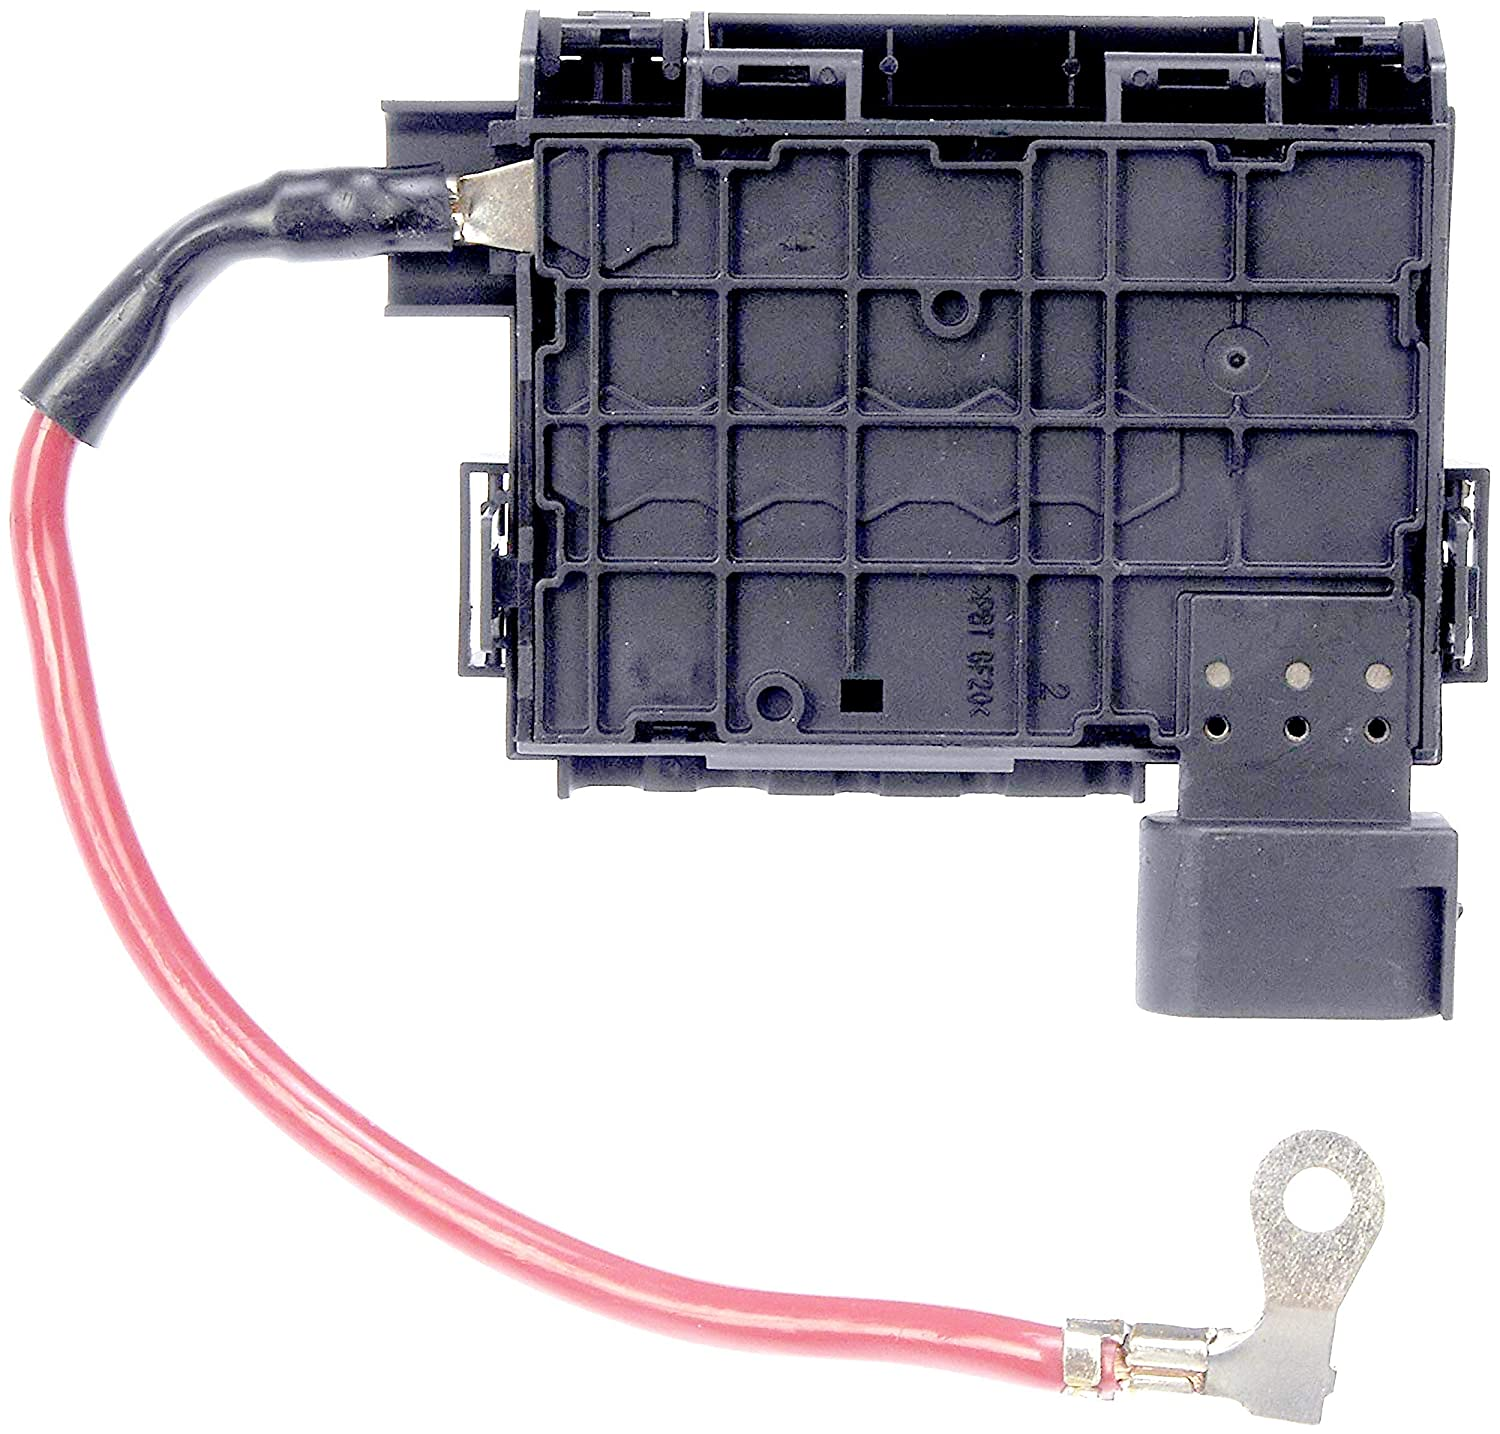 Apdty 035792 Fuse Box Assembly Battery Mounted With New Fuses Vw Beetle Melting Fusible Links Fits 1998 2003 Models Up To Vin 1c3440500 1999 2001